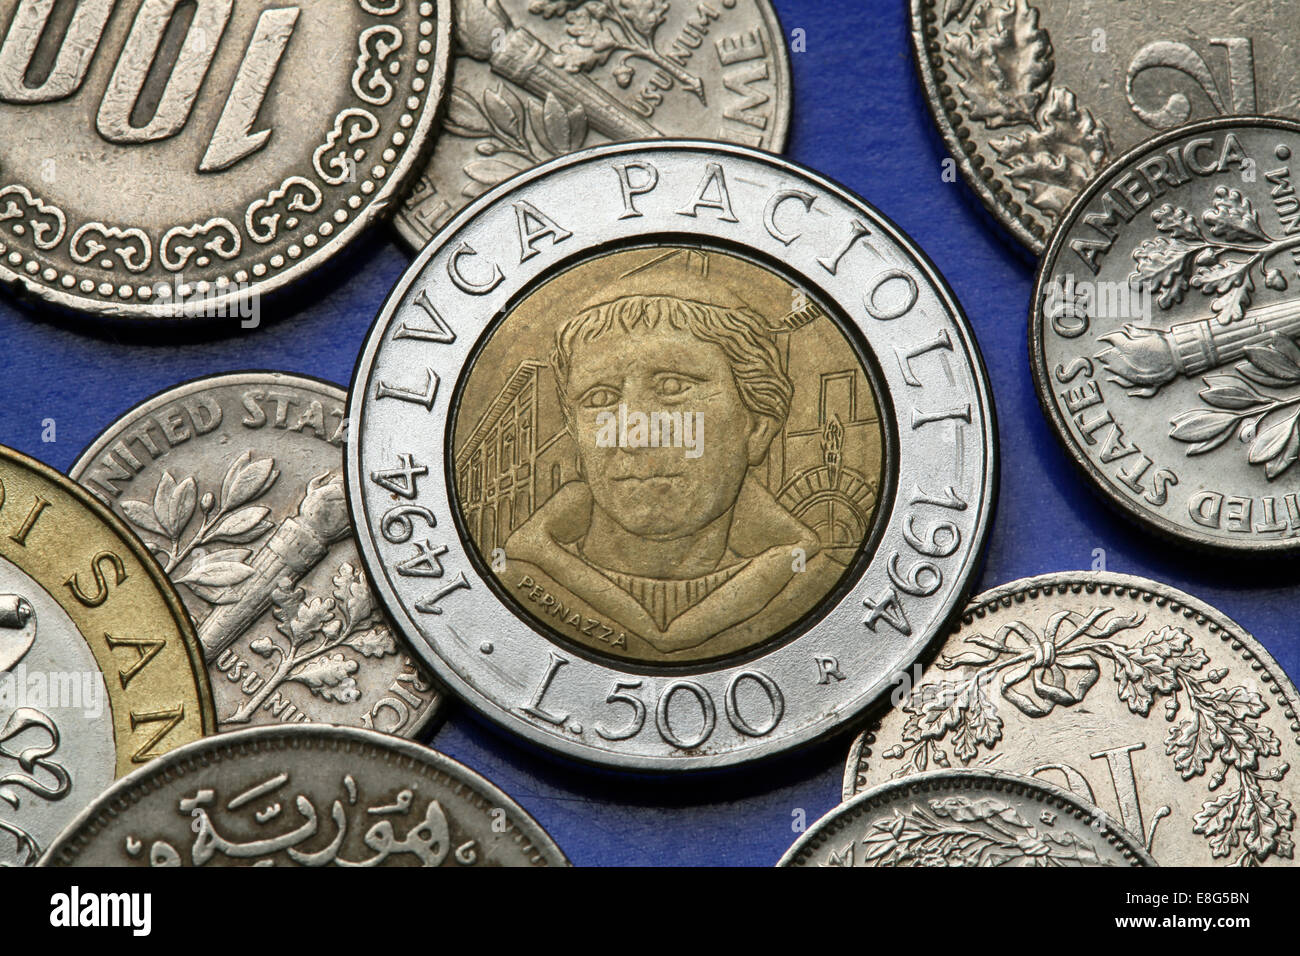 Coins of Italy. Italian Renaissance mathematician Luca Pacioli depicted in the old Italian 500 lira coin. - Stock Image